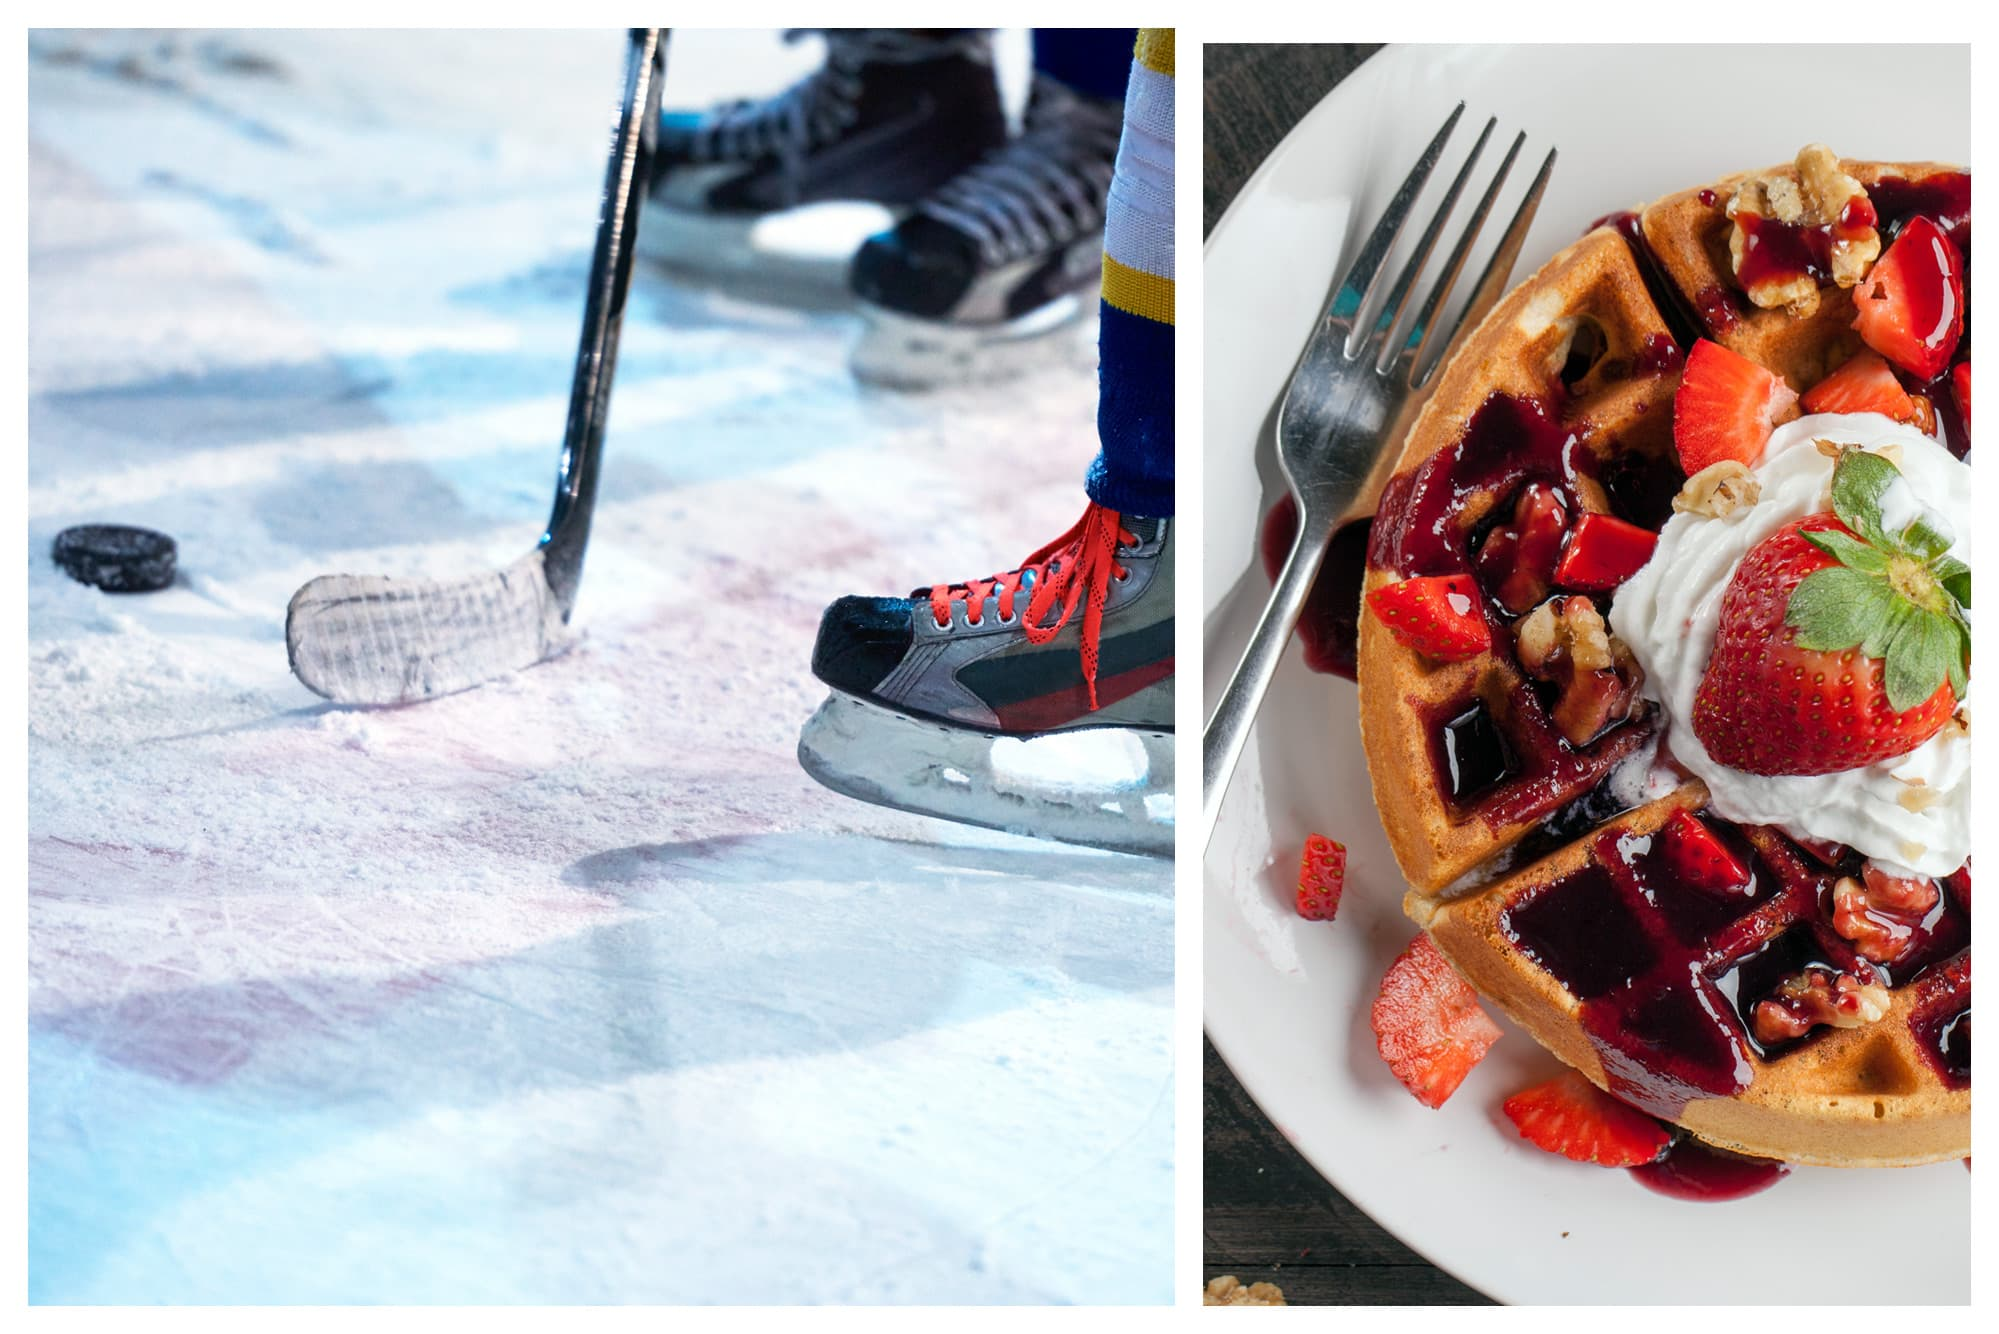 Hockey skates and stick on the ice and berry waffles